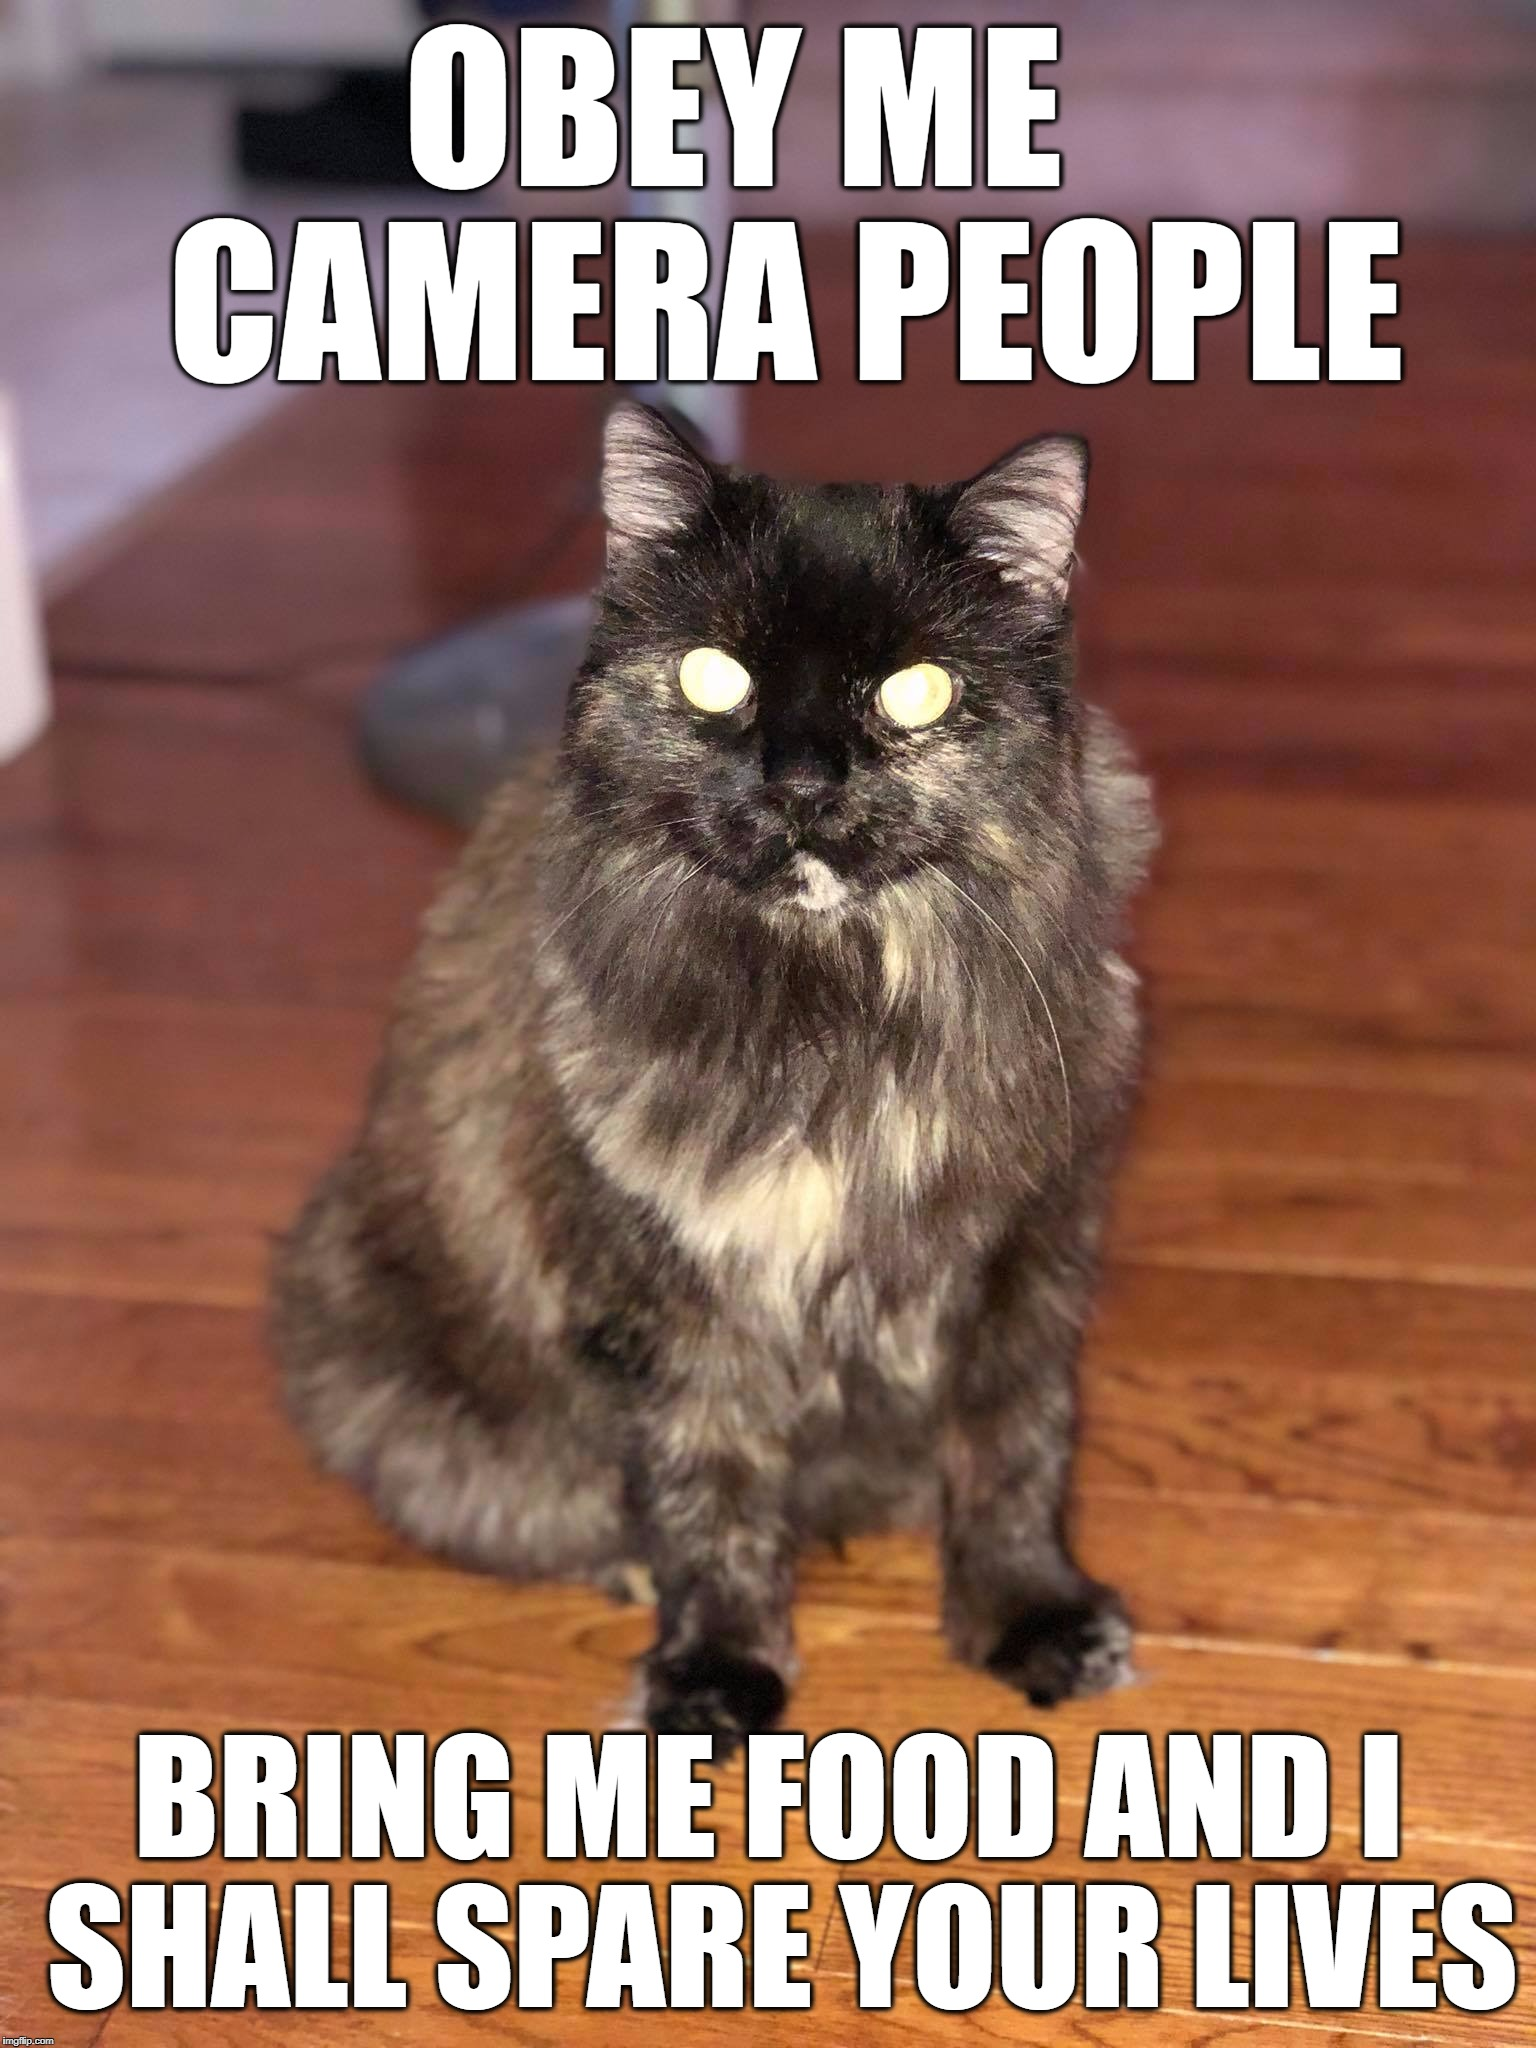 Evil Cat | OBEY ME   CAMERA PEOPLE BRING ME FOOD AND I SHALL SPARE YOUR LIVES | image tagged in memes,funny memes,funny cat memes,evil cat | made w/ Imgflip meme maker